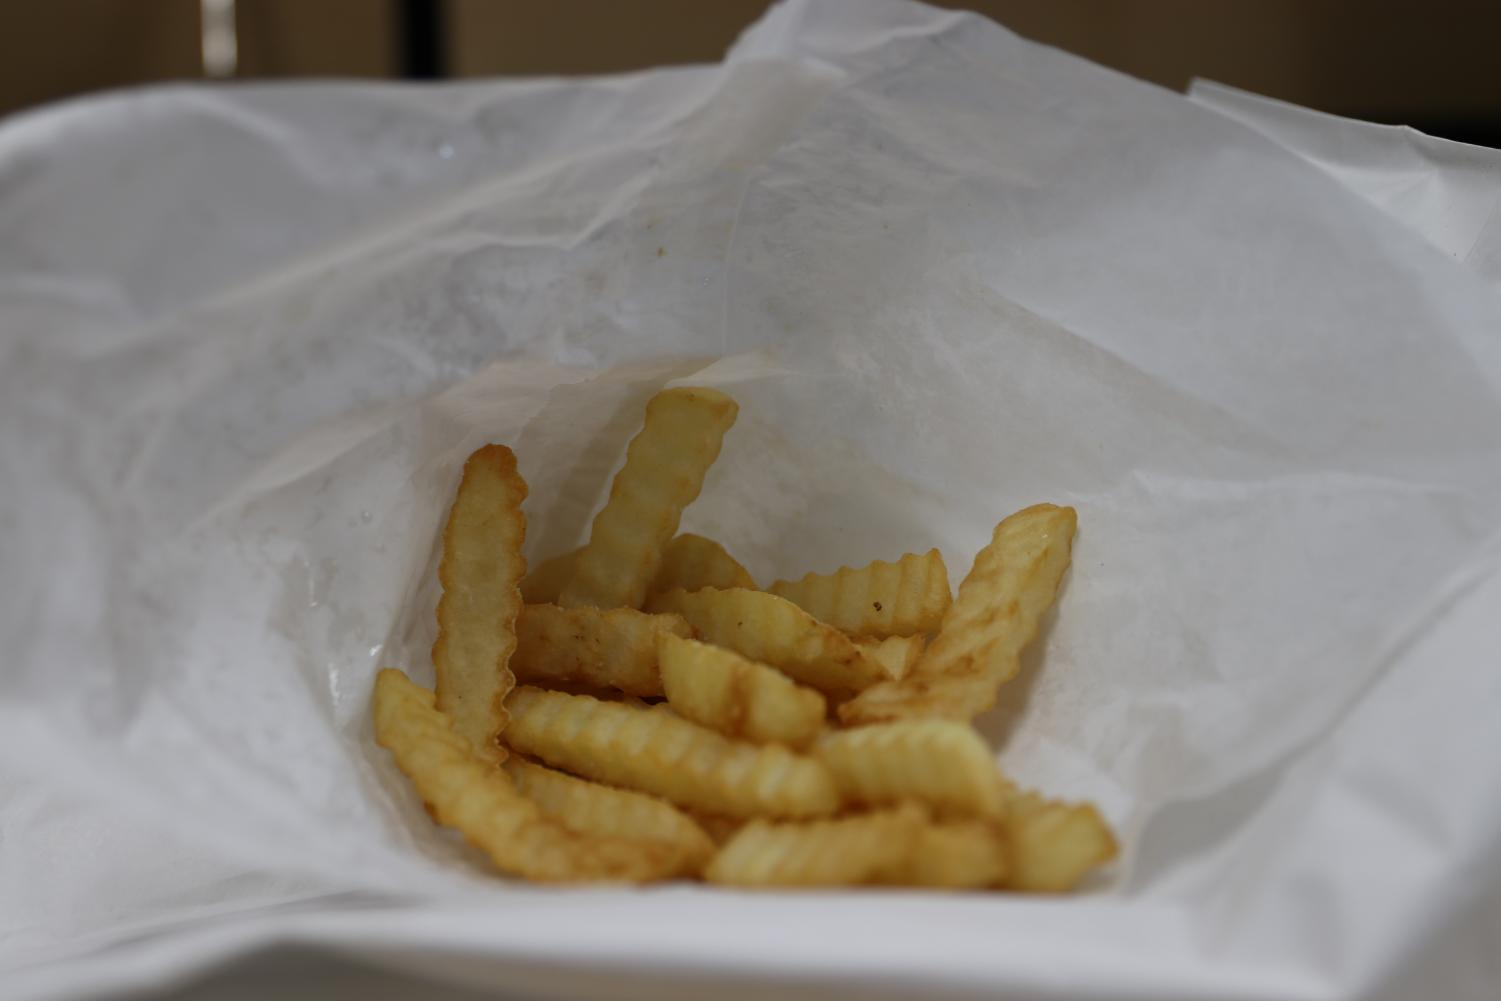 French fries from Mark's In and Out, at right, are cheap and classic, but nothing to get excited about